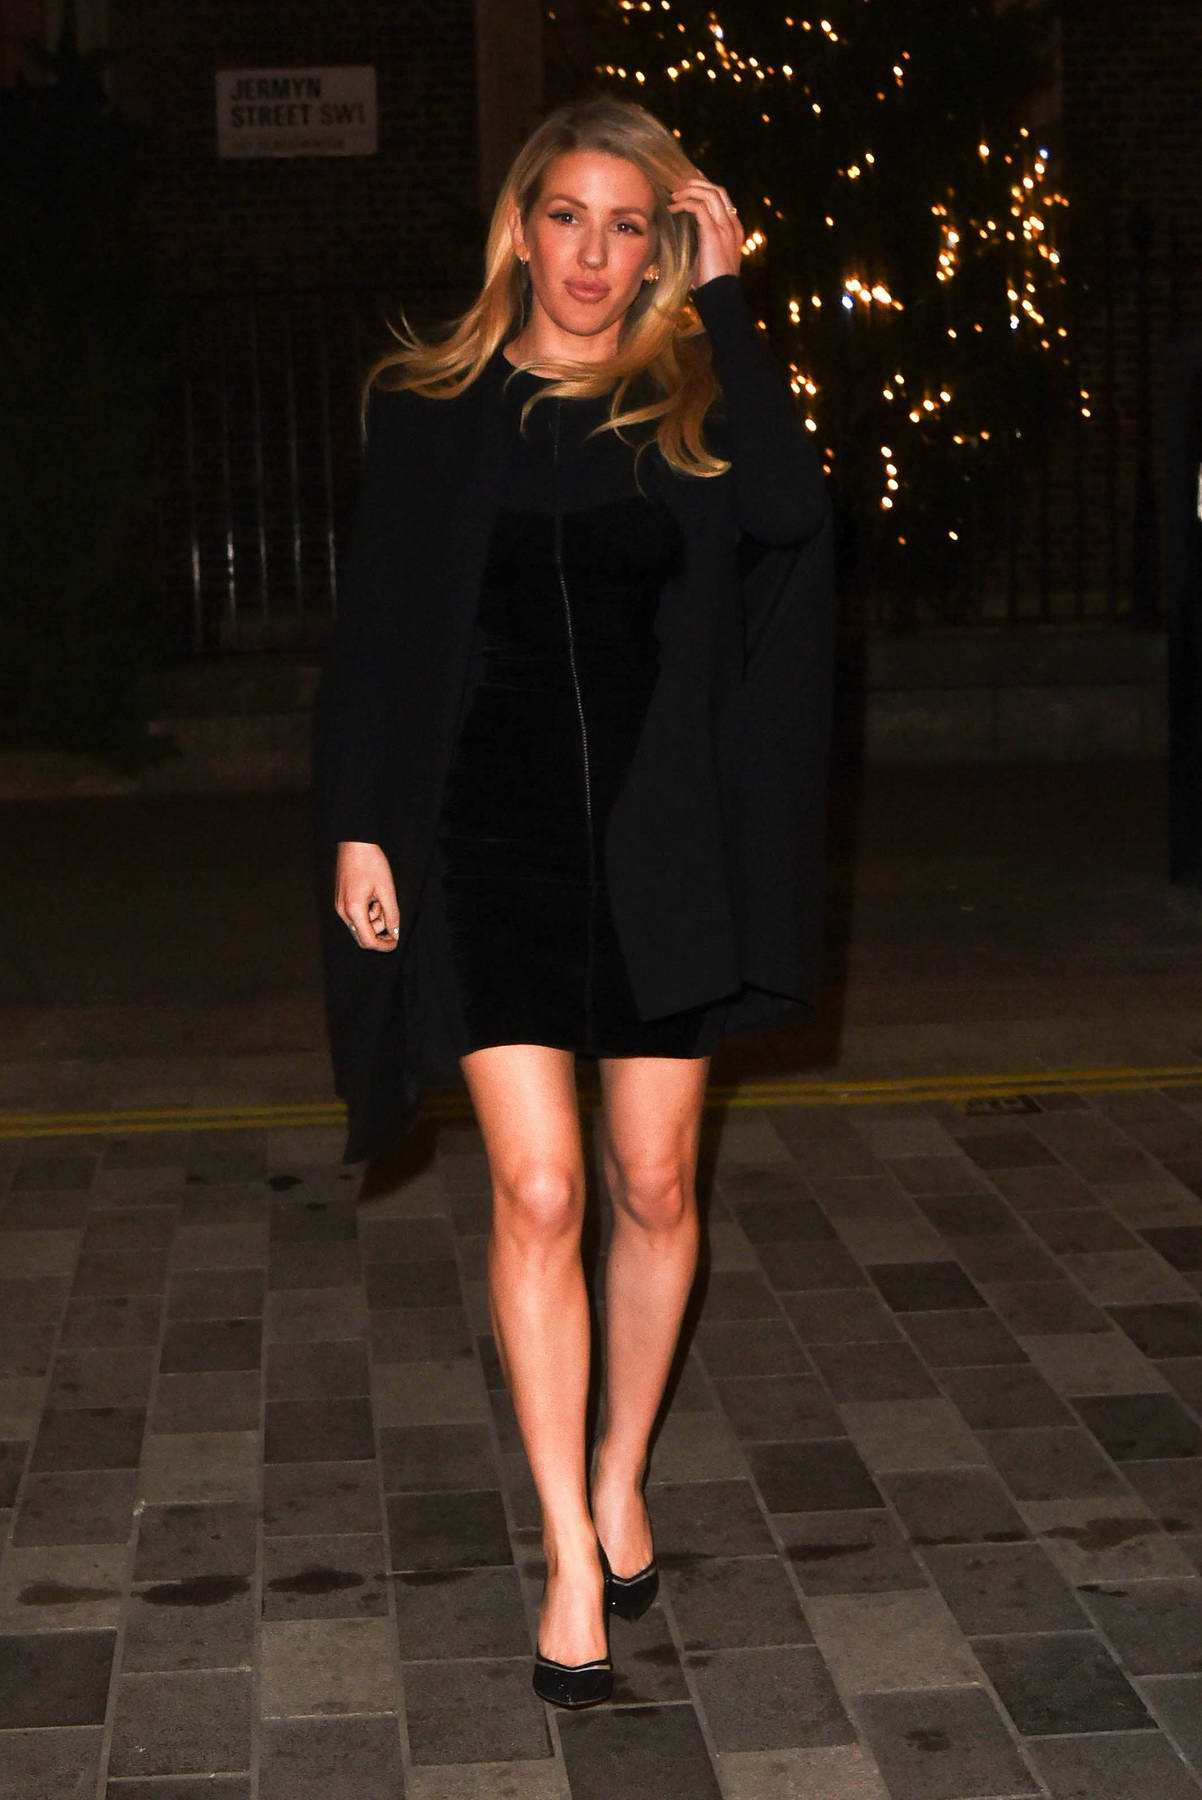 Ellie Goulding attends Fayre of St James Christmas Carol Concert and after-party in London